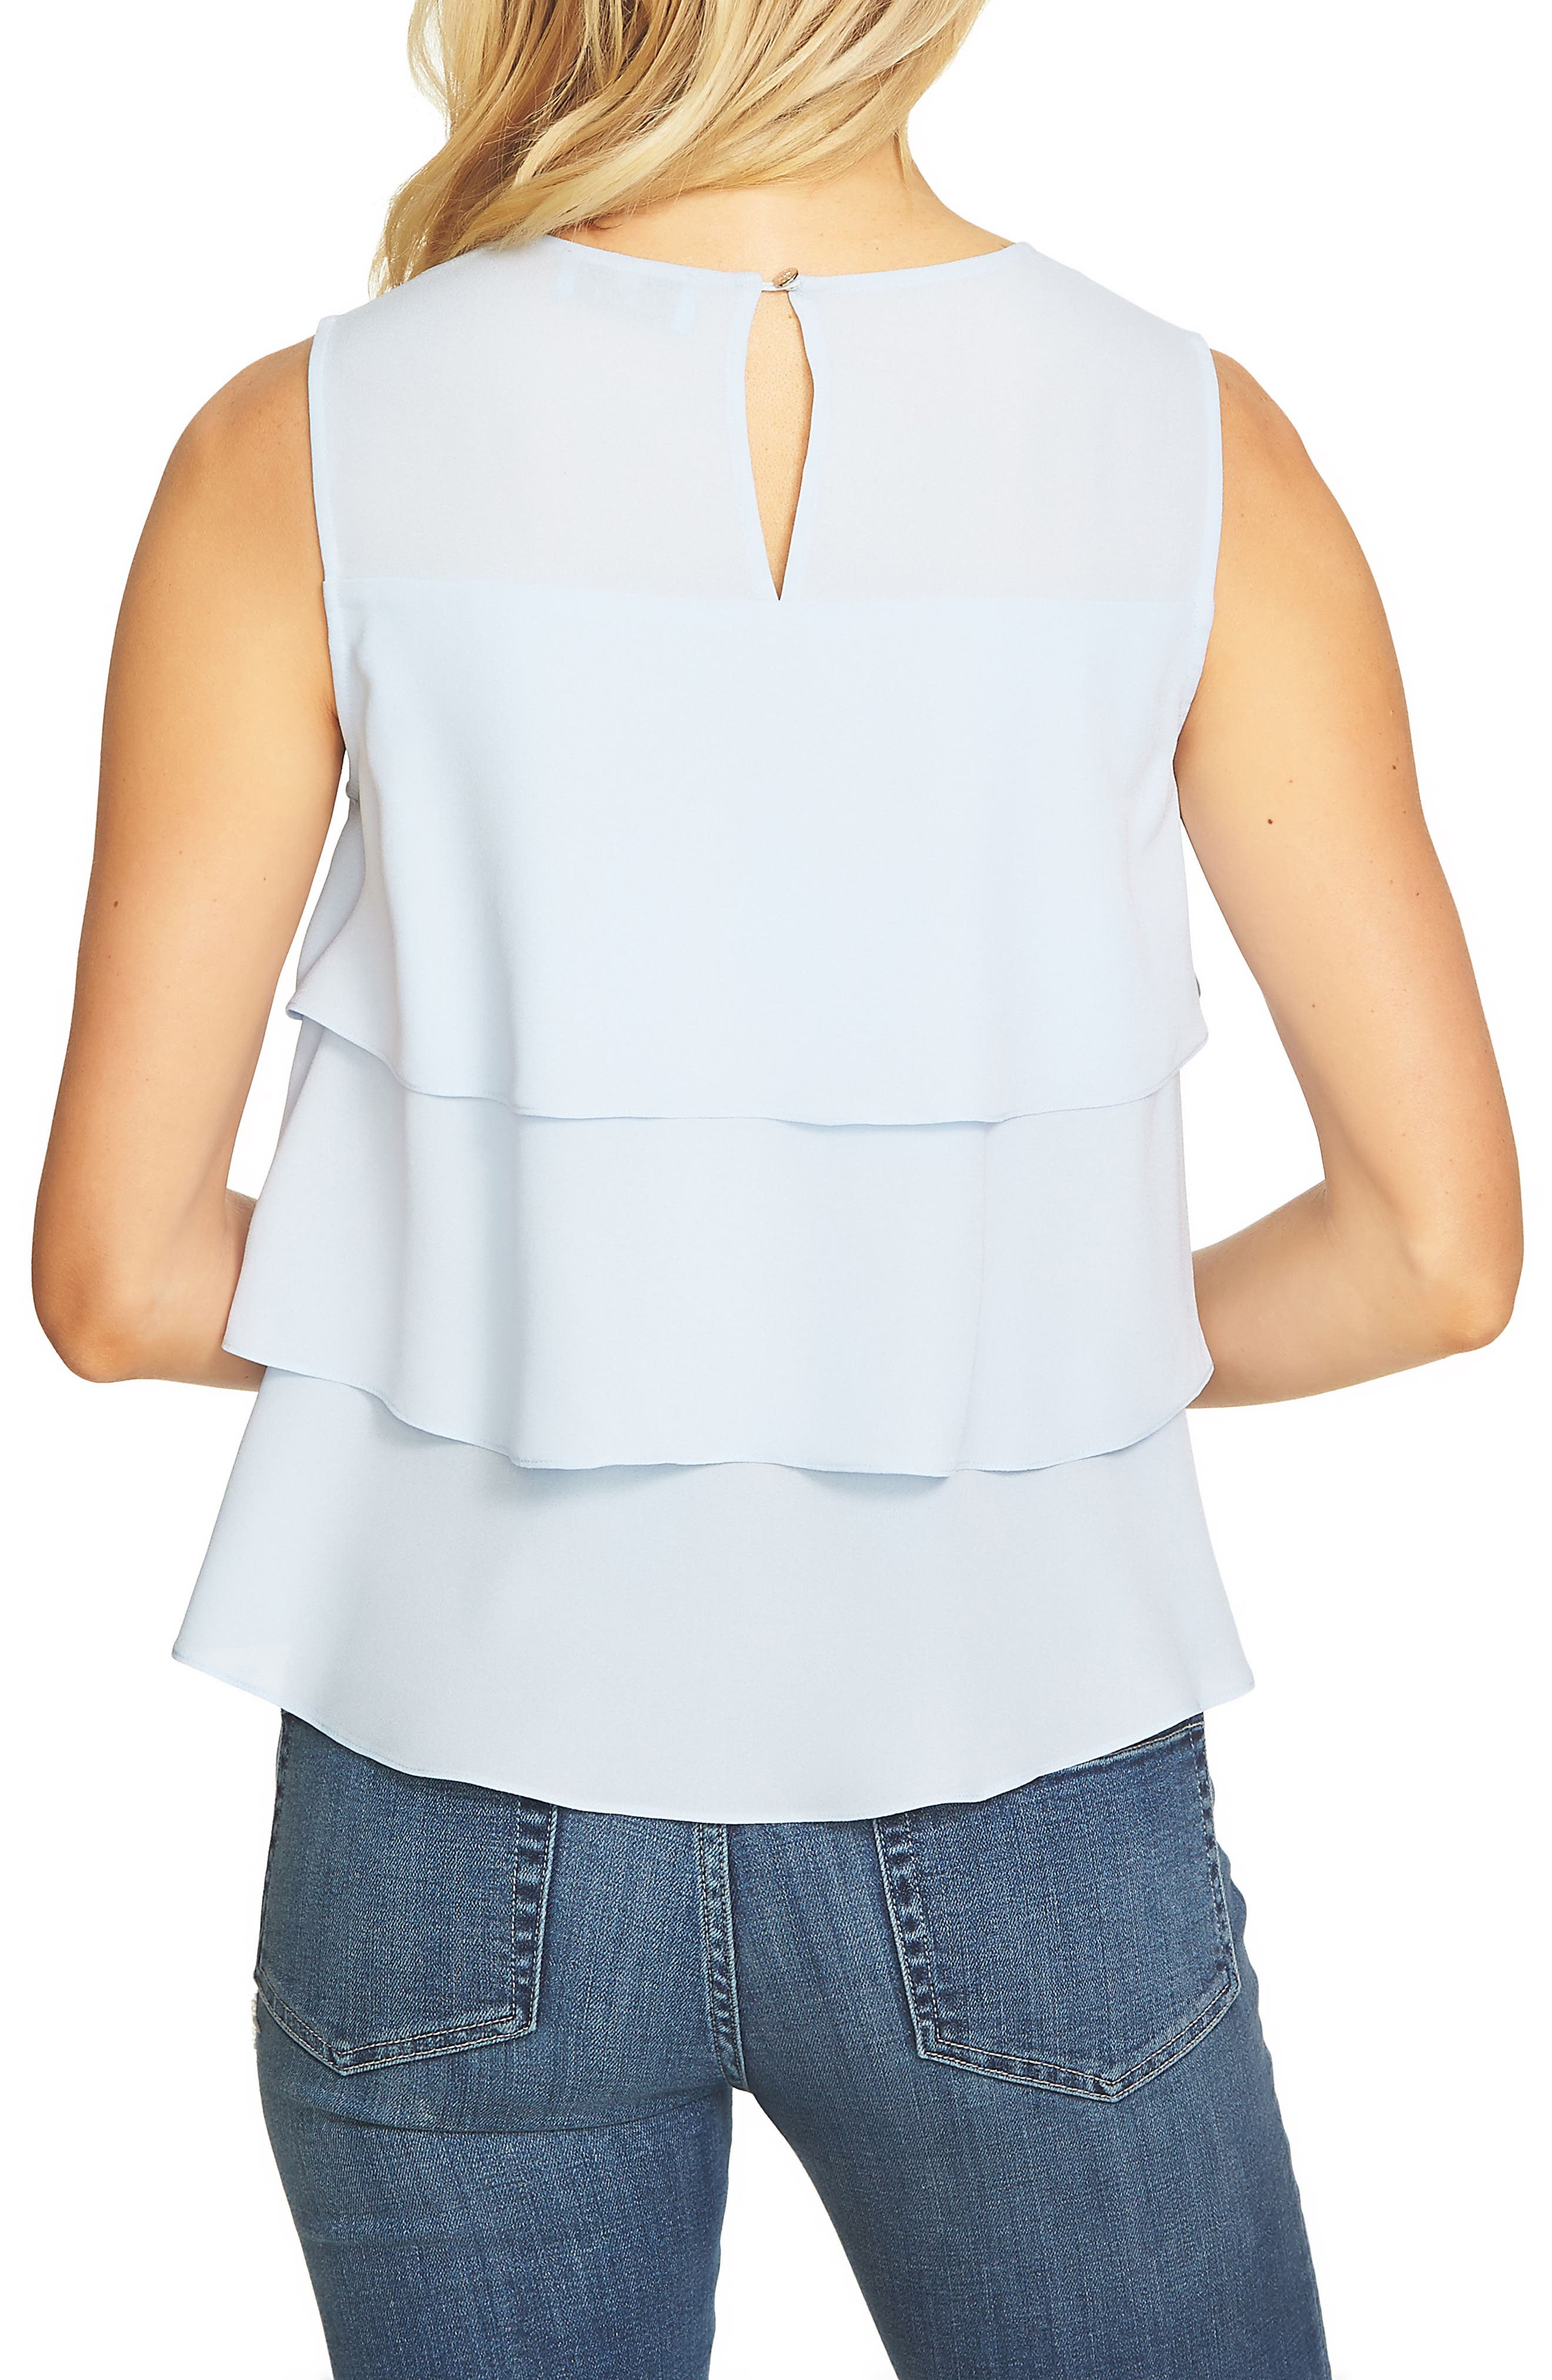 Tiered Ruffle Crepe Top,                             Alternate thumbnail 2, color,                             Ocean Breeze